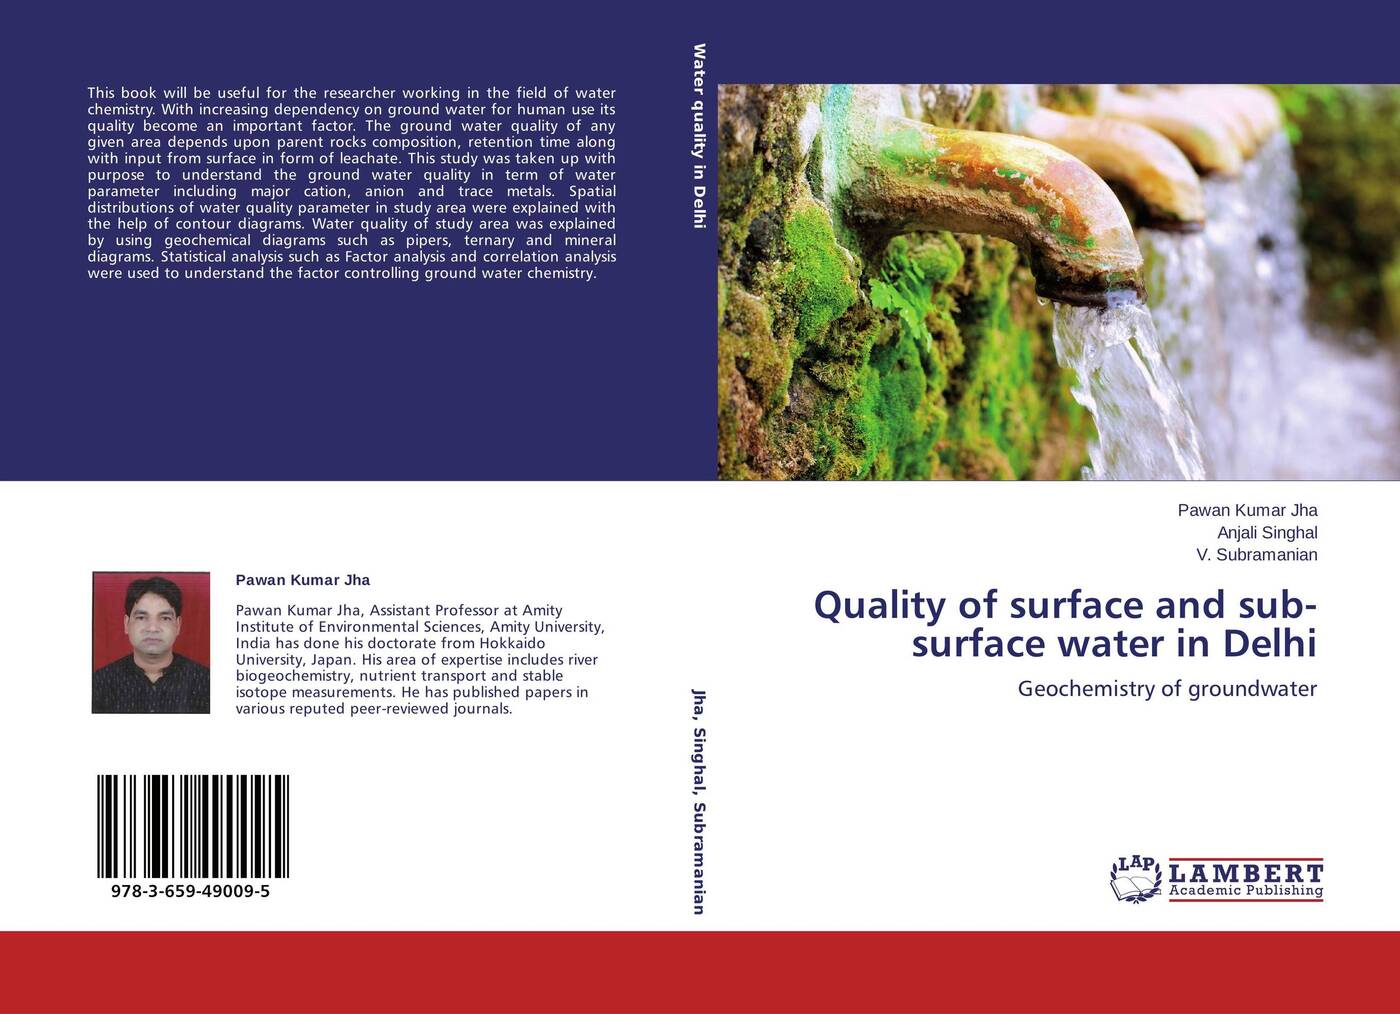 Pawan Kumar Jha,Anjali Singhal and V. Subramanian Quality of surface and sub-surface water in Delhi ktm silicone car surface water wiper scraper tool blue white